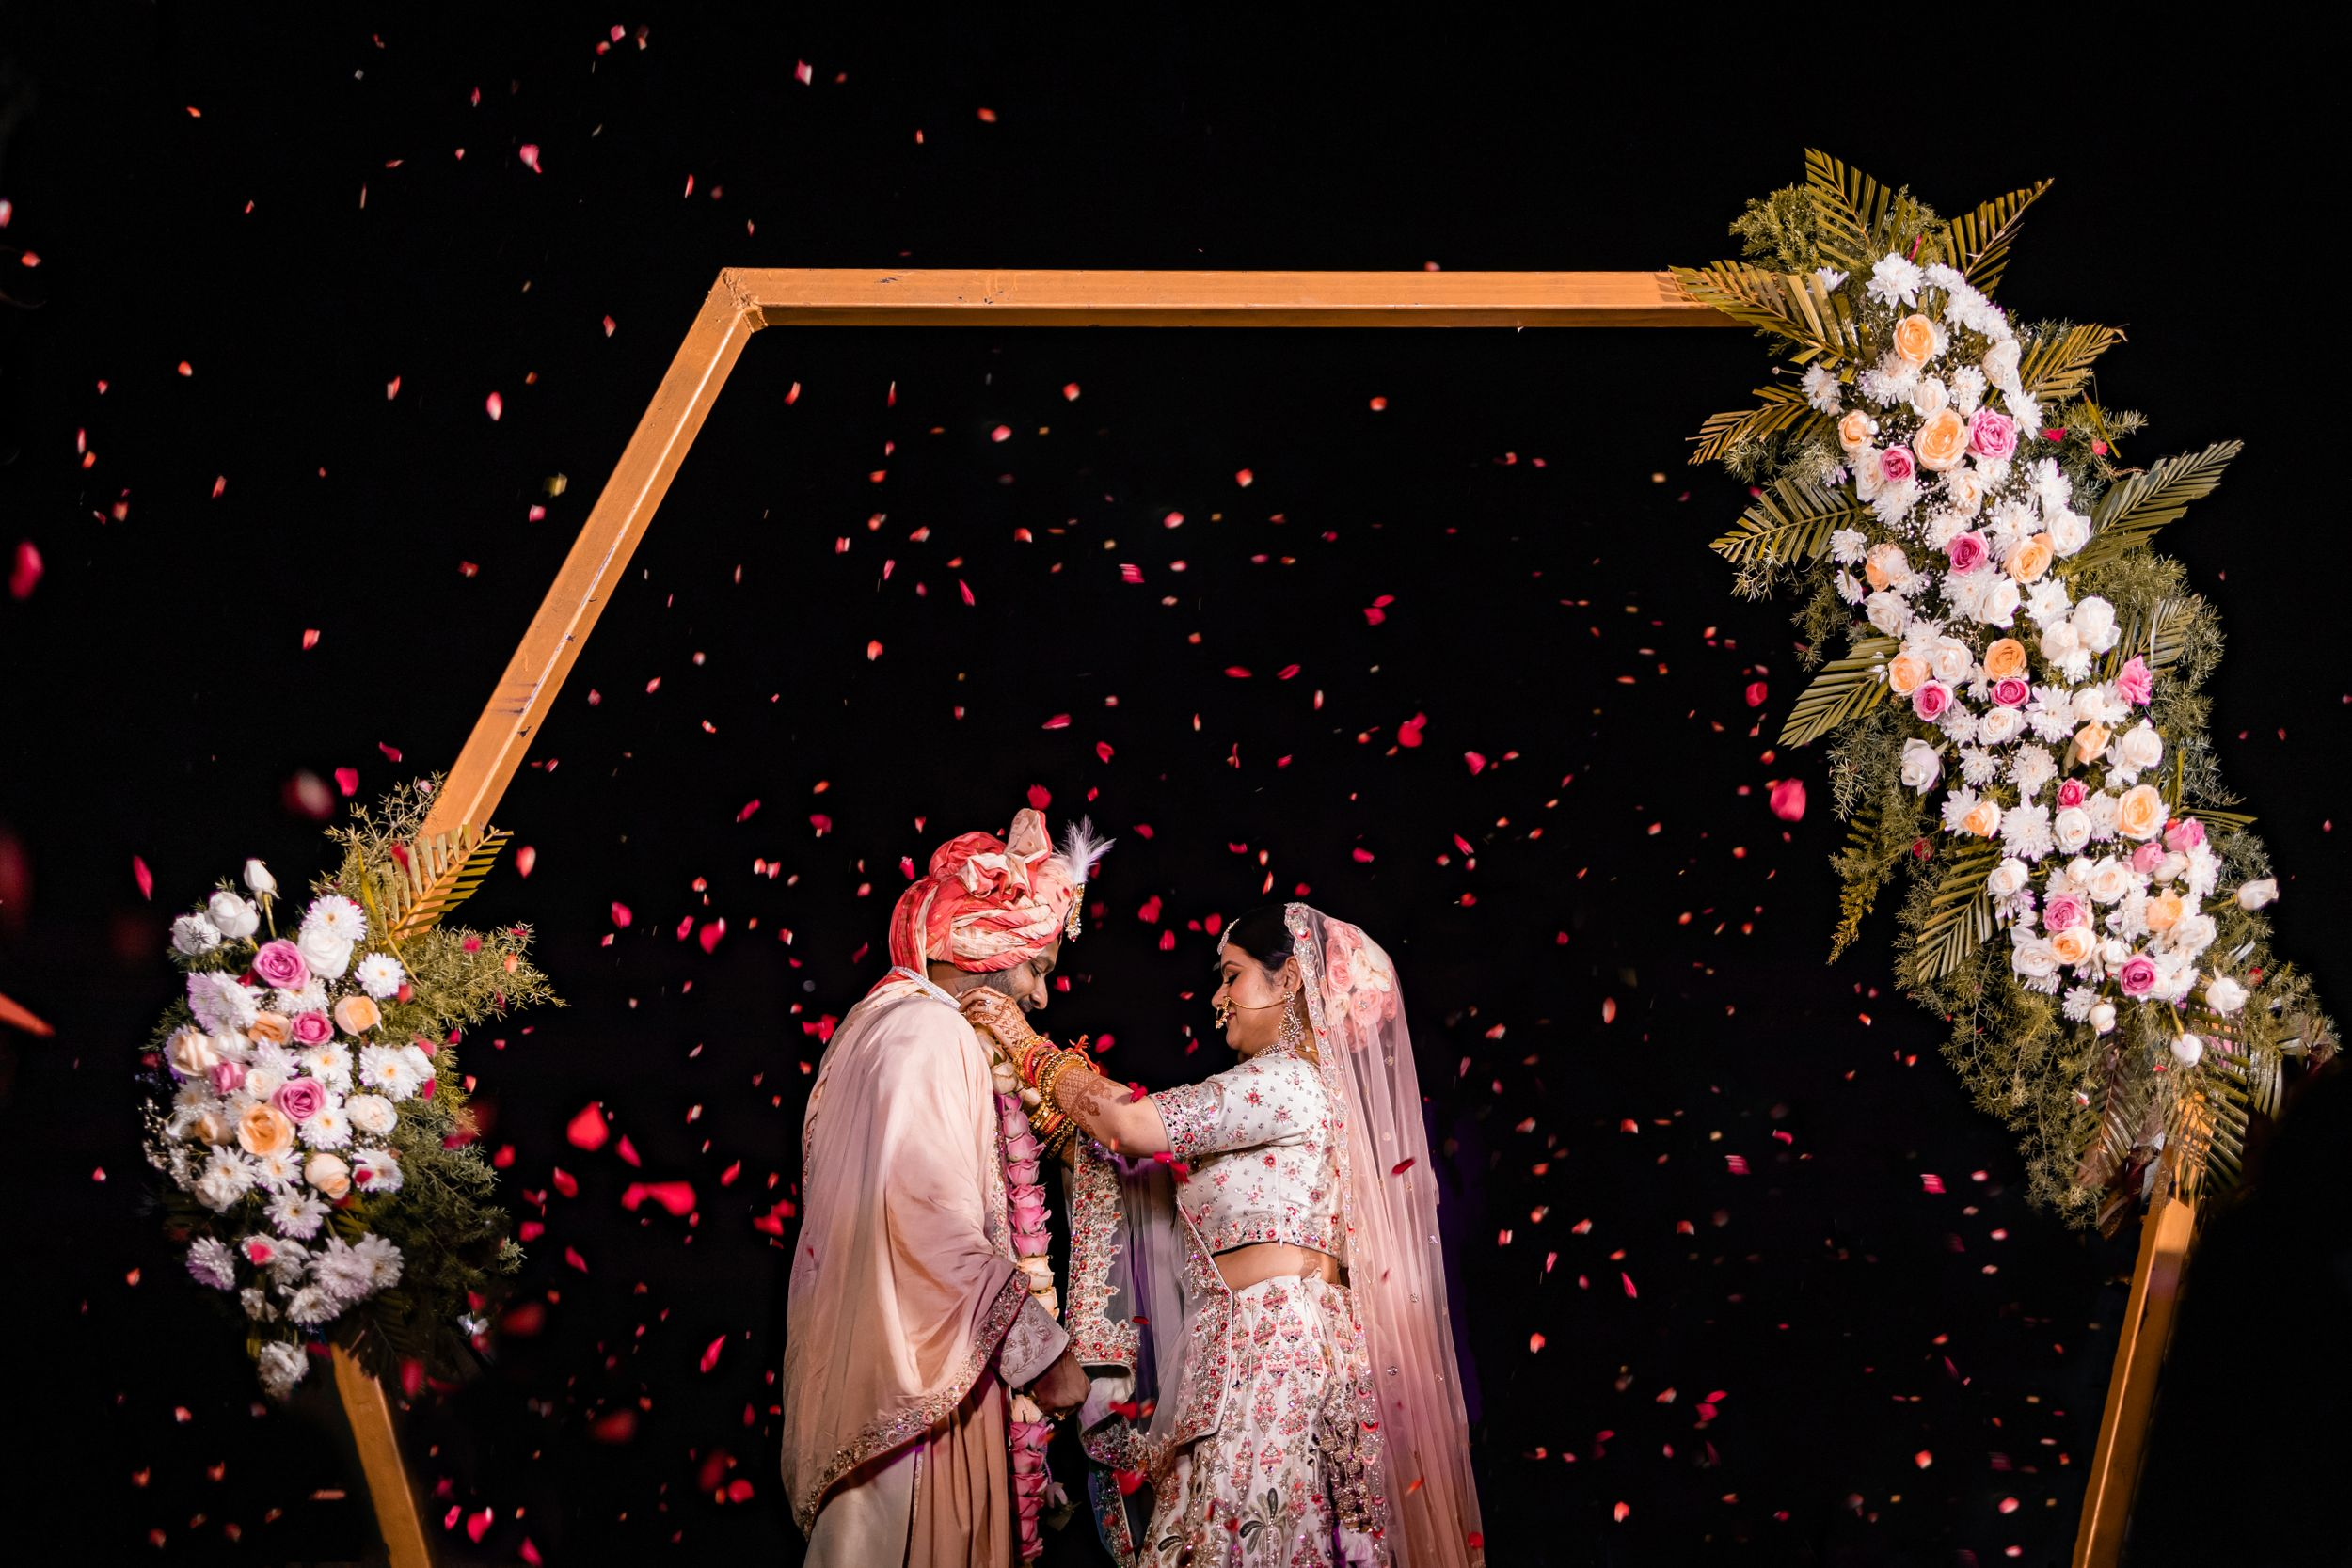 rose petal shower on couple during varmala rituals at destination wedding w-Goa